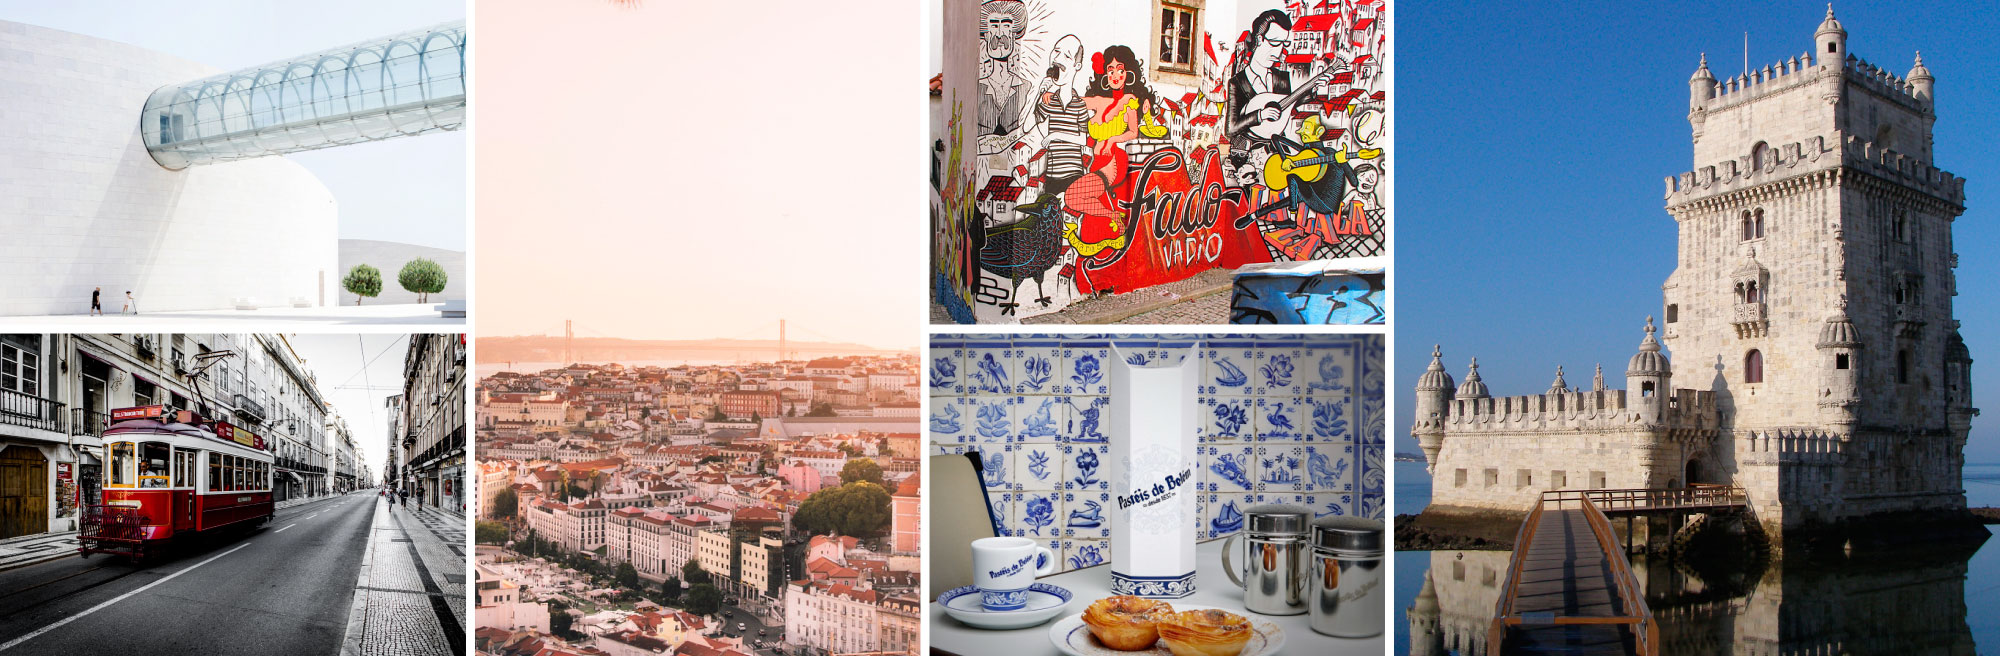 7 Reasons Lisbon could be Europe´s coolest city - by CNN